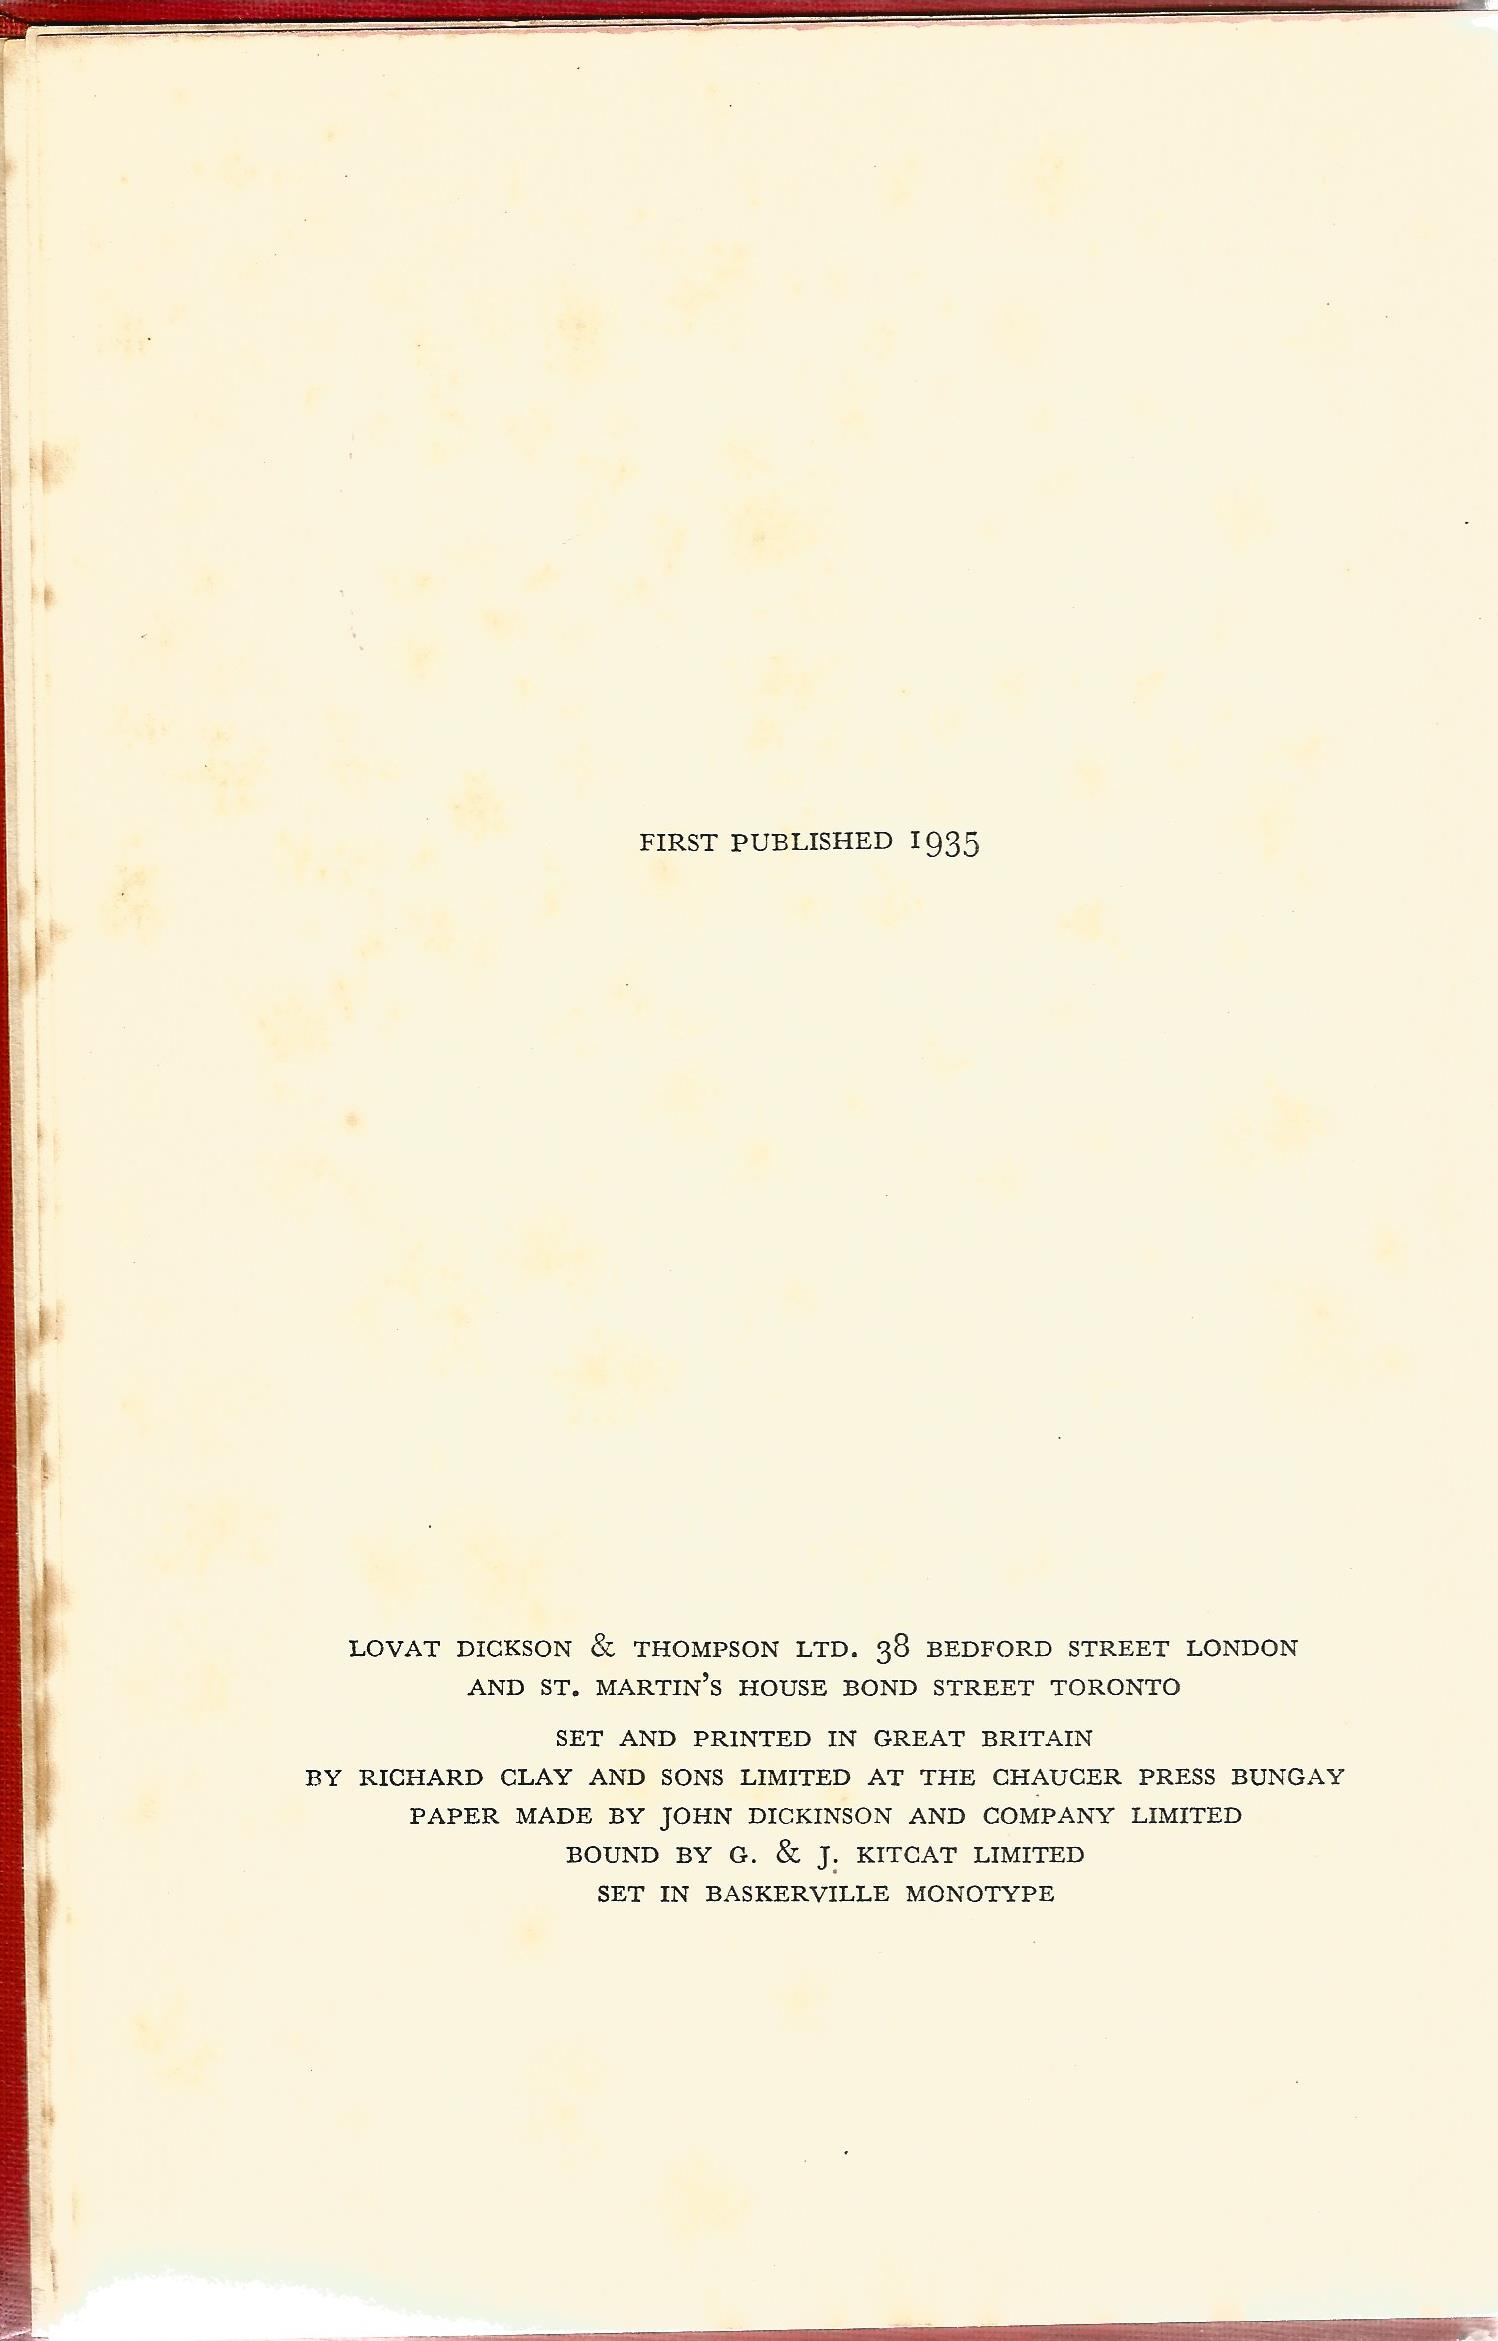 Sir Archibald McIndoe Family Photo Album plus 5 Hardback Books from His personal collection - Image 15 of 23